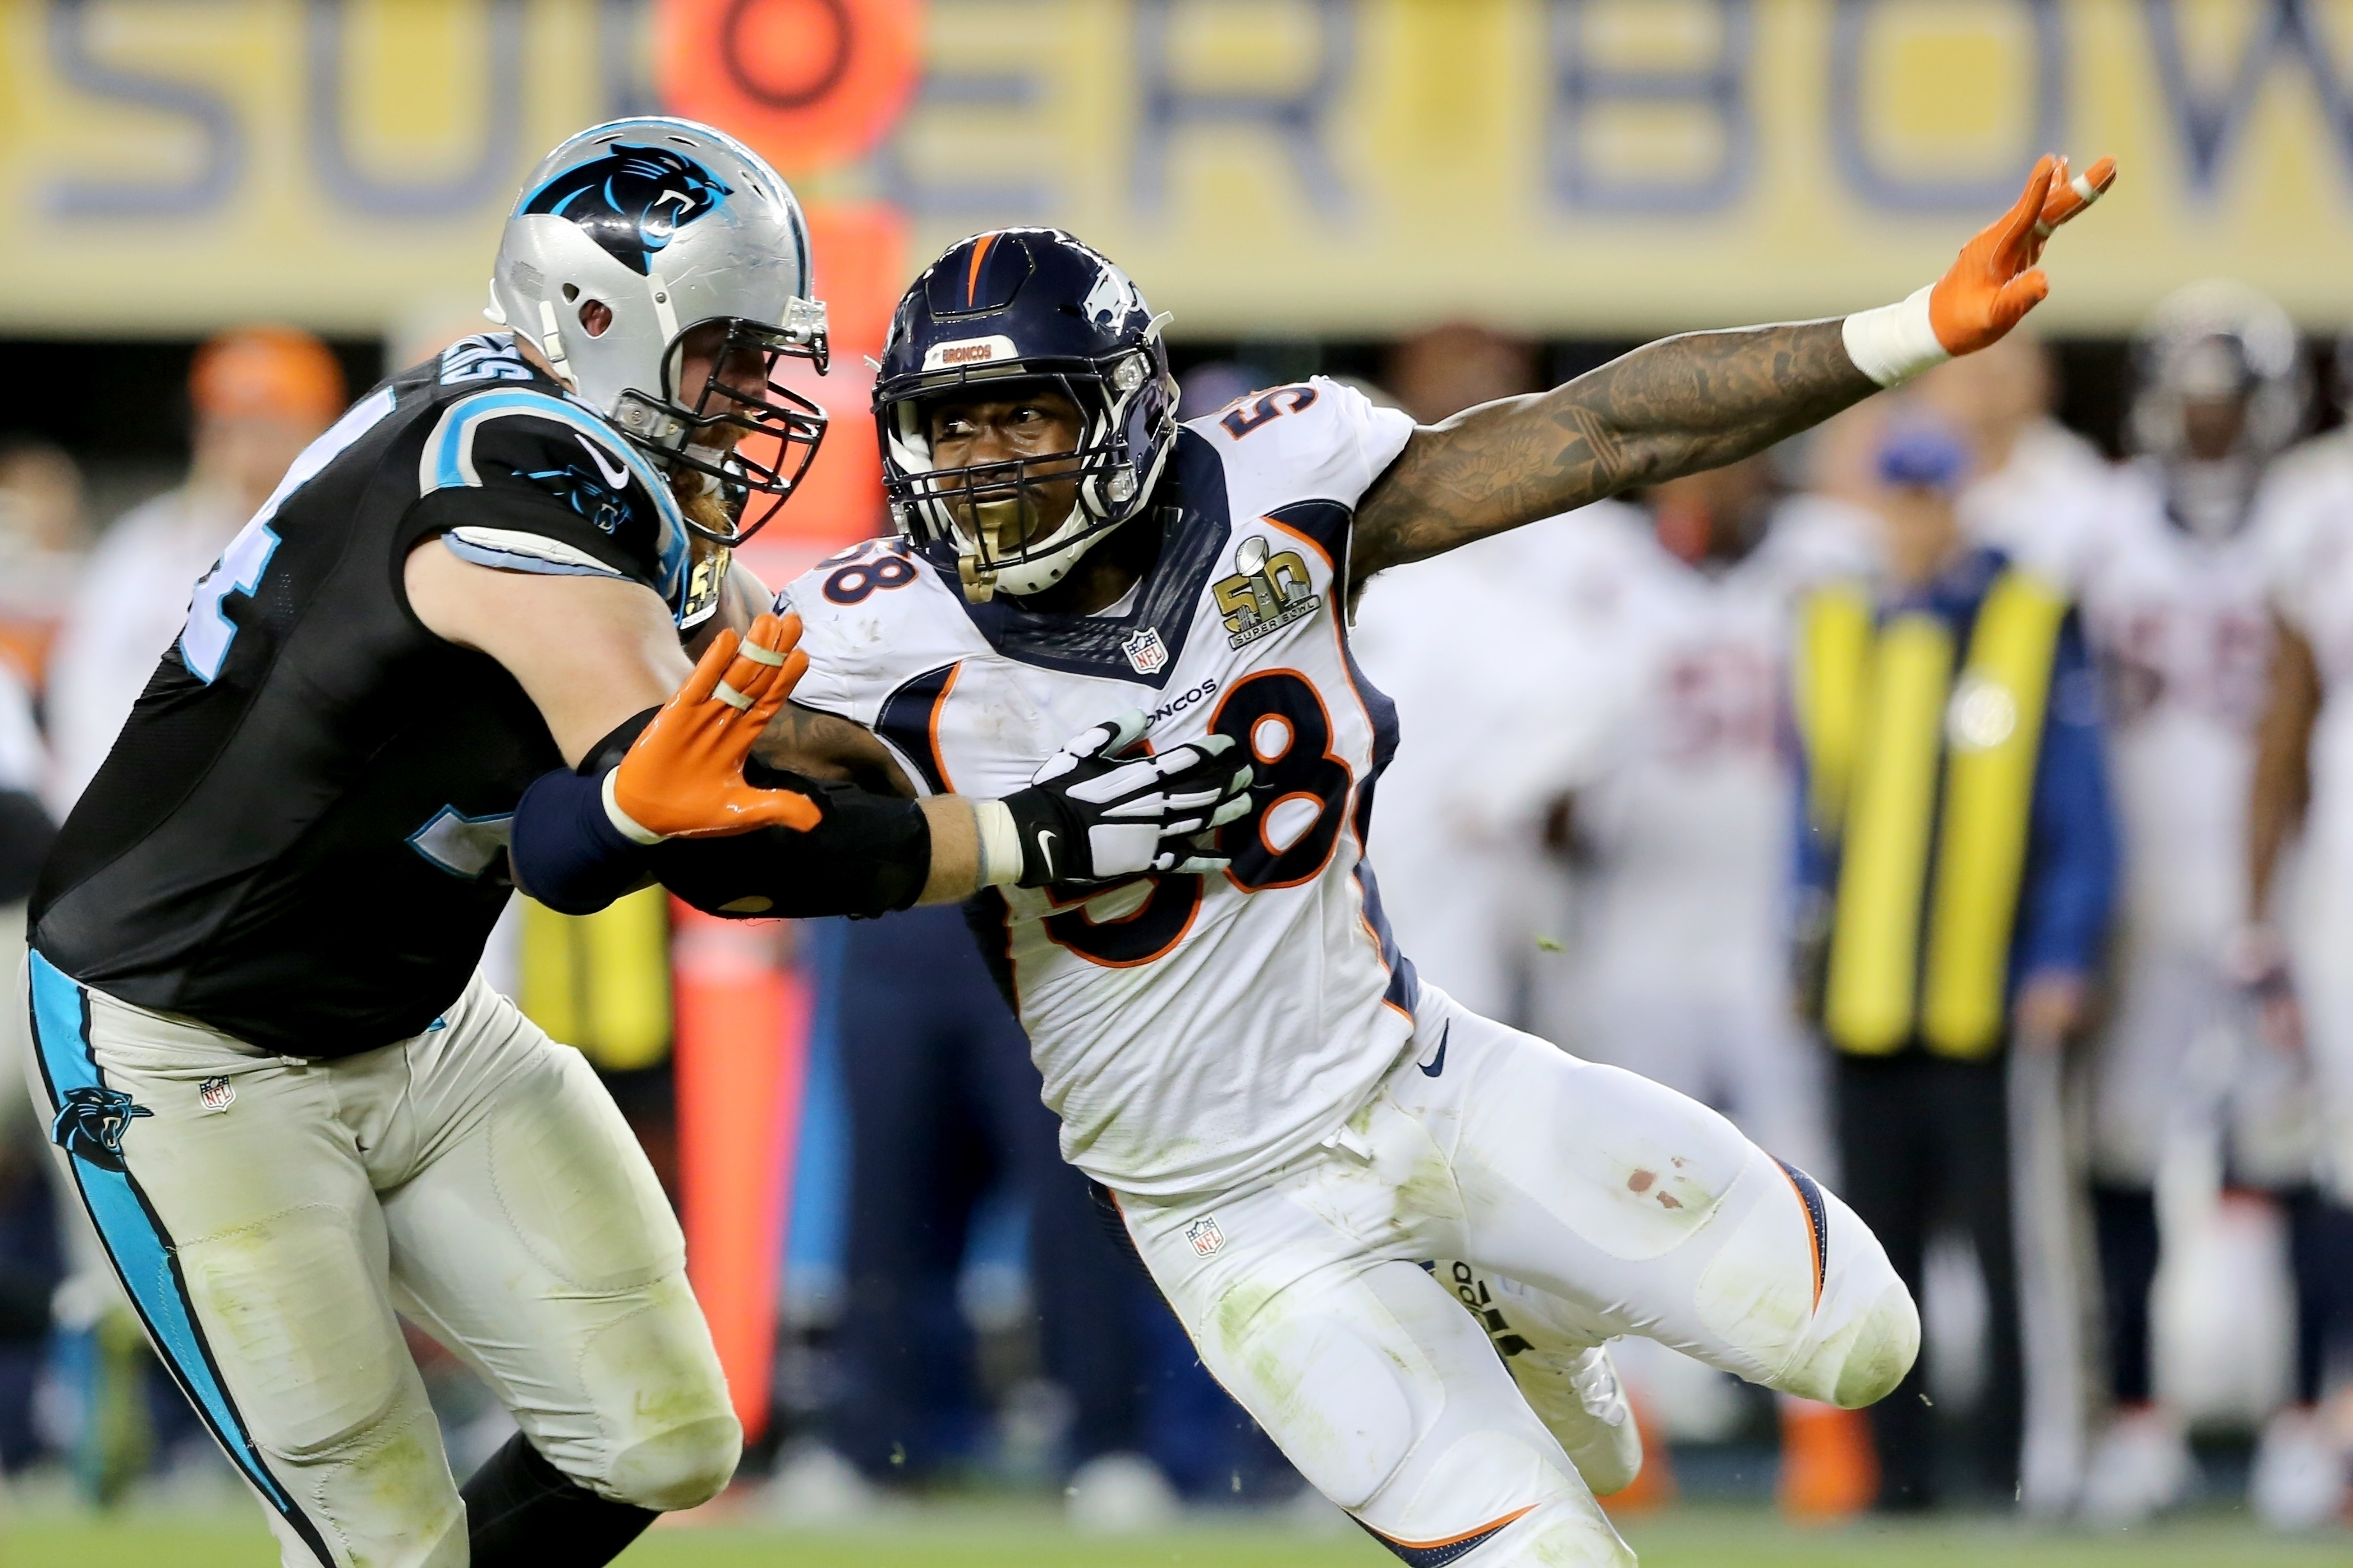 FILE - In this Feb. 7, 2016, file photo, Denver Bronco's Von Miller (58) makes an outside rush against the Carolina Panthers' Mike Remmers (74) during the NFL Super Bowl 50 football game in Santa Clara, Calif. The Broncos play the Indianapolis Colts Sunda